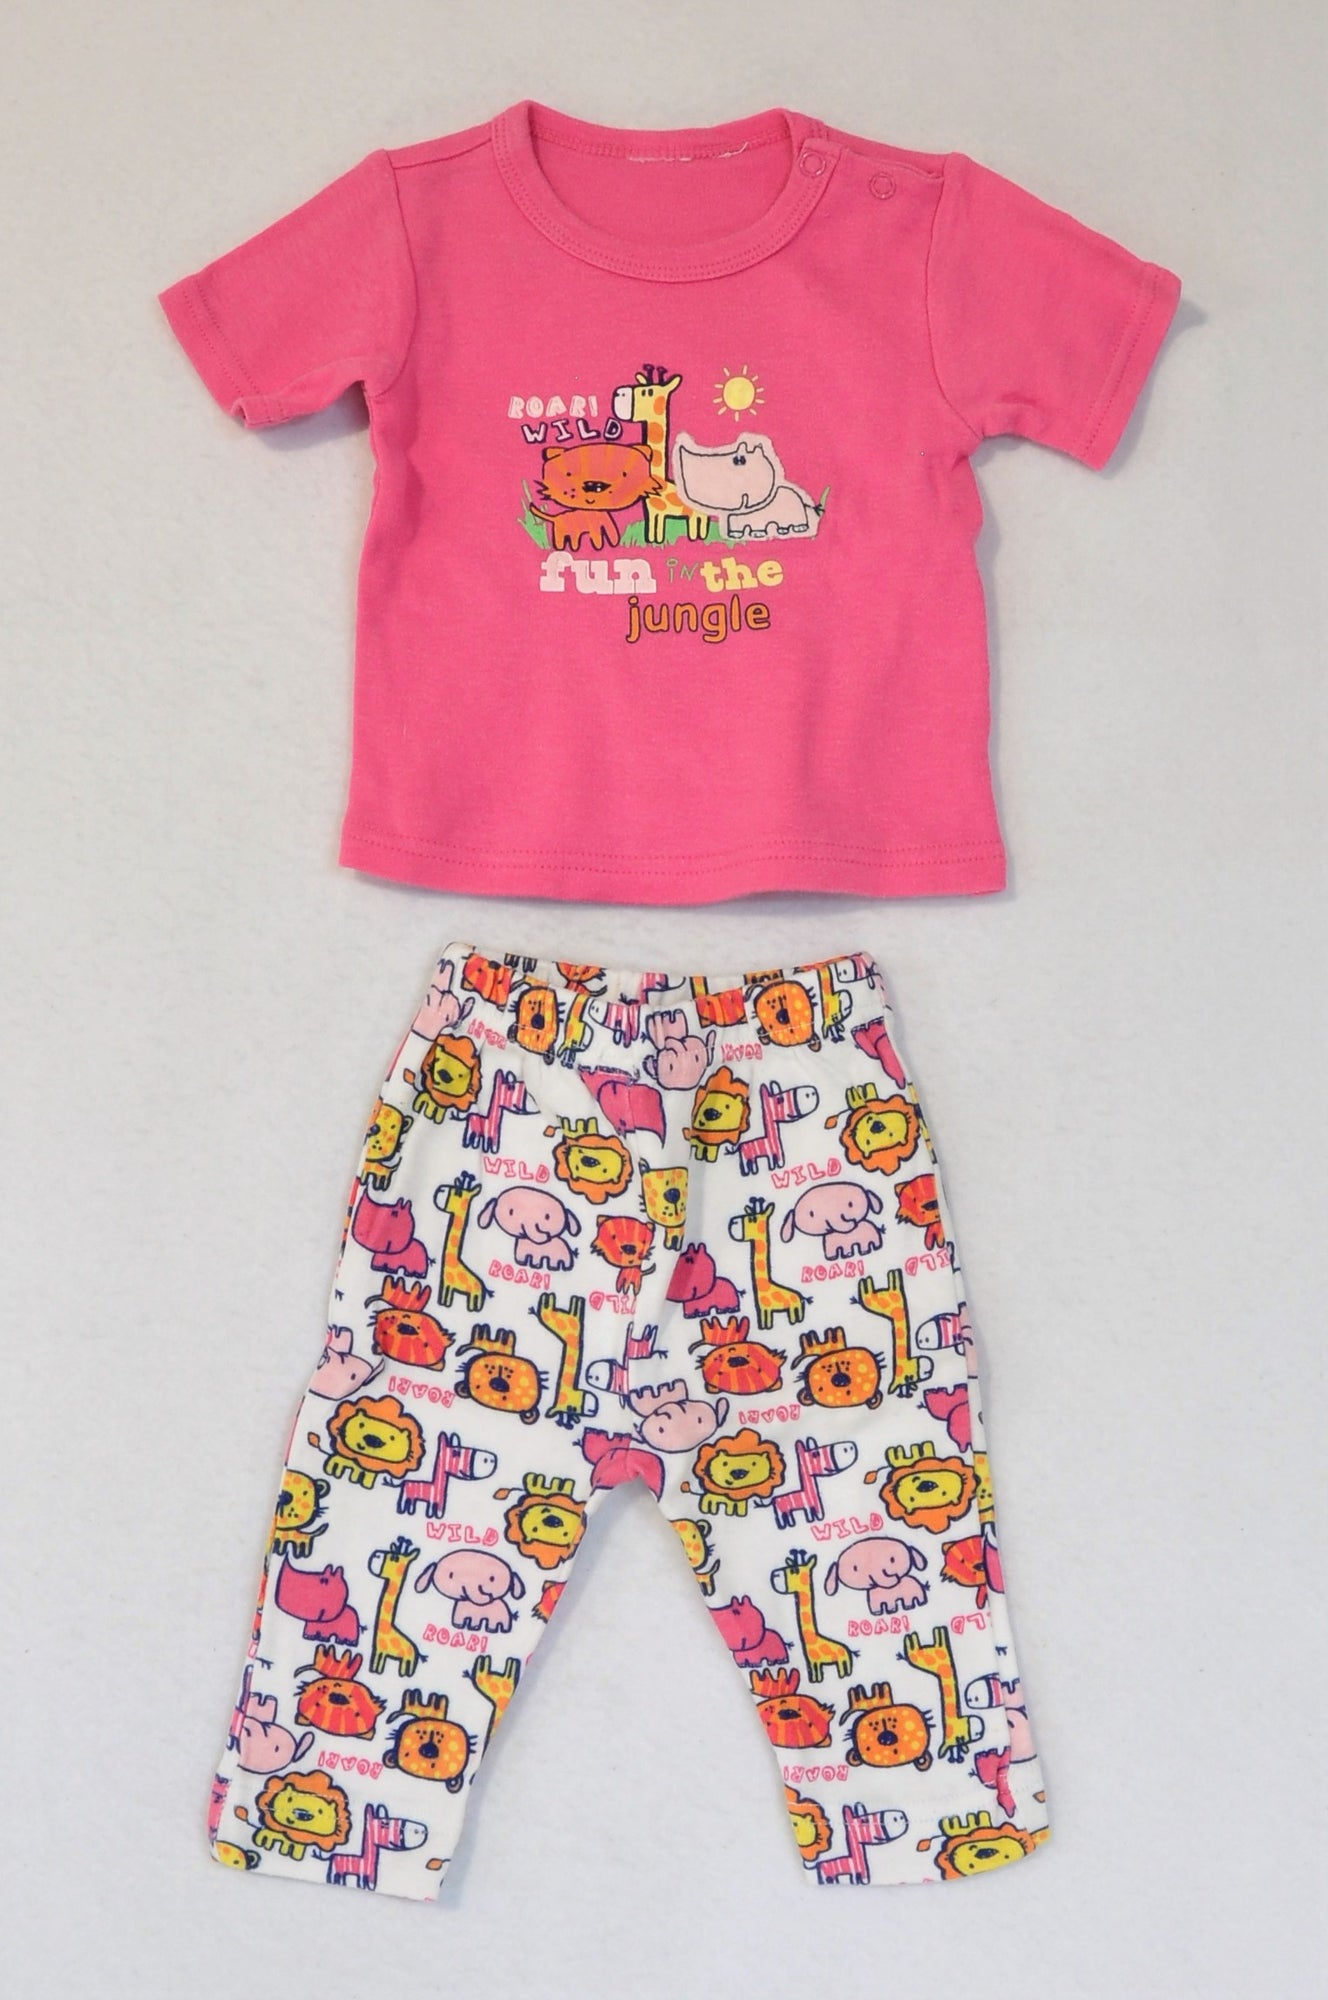 Unbranded Pink Fun In The Jungle T-shirt & White Animal Leggings Outfit Girls 3-6 months